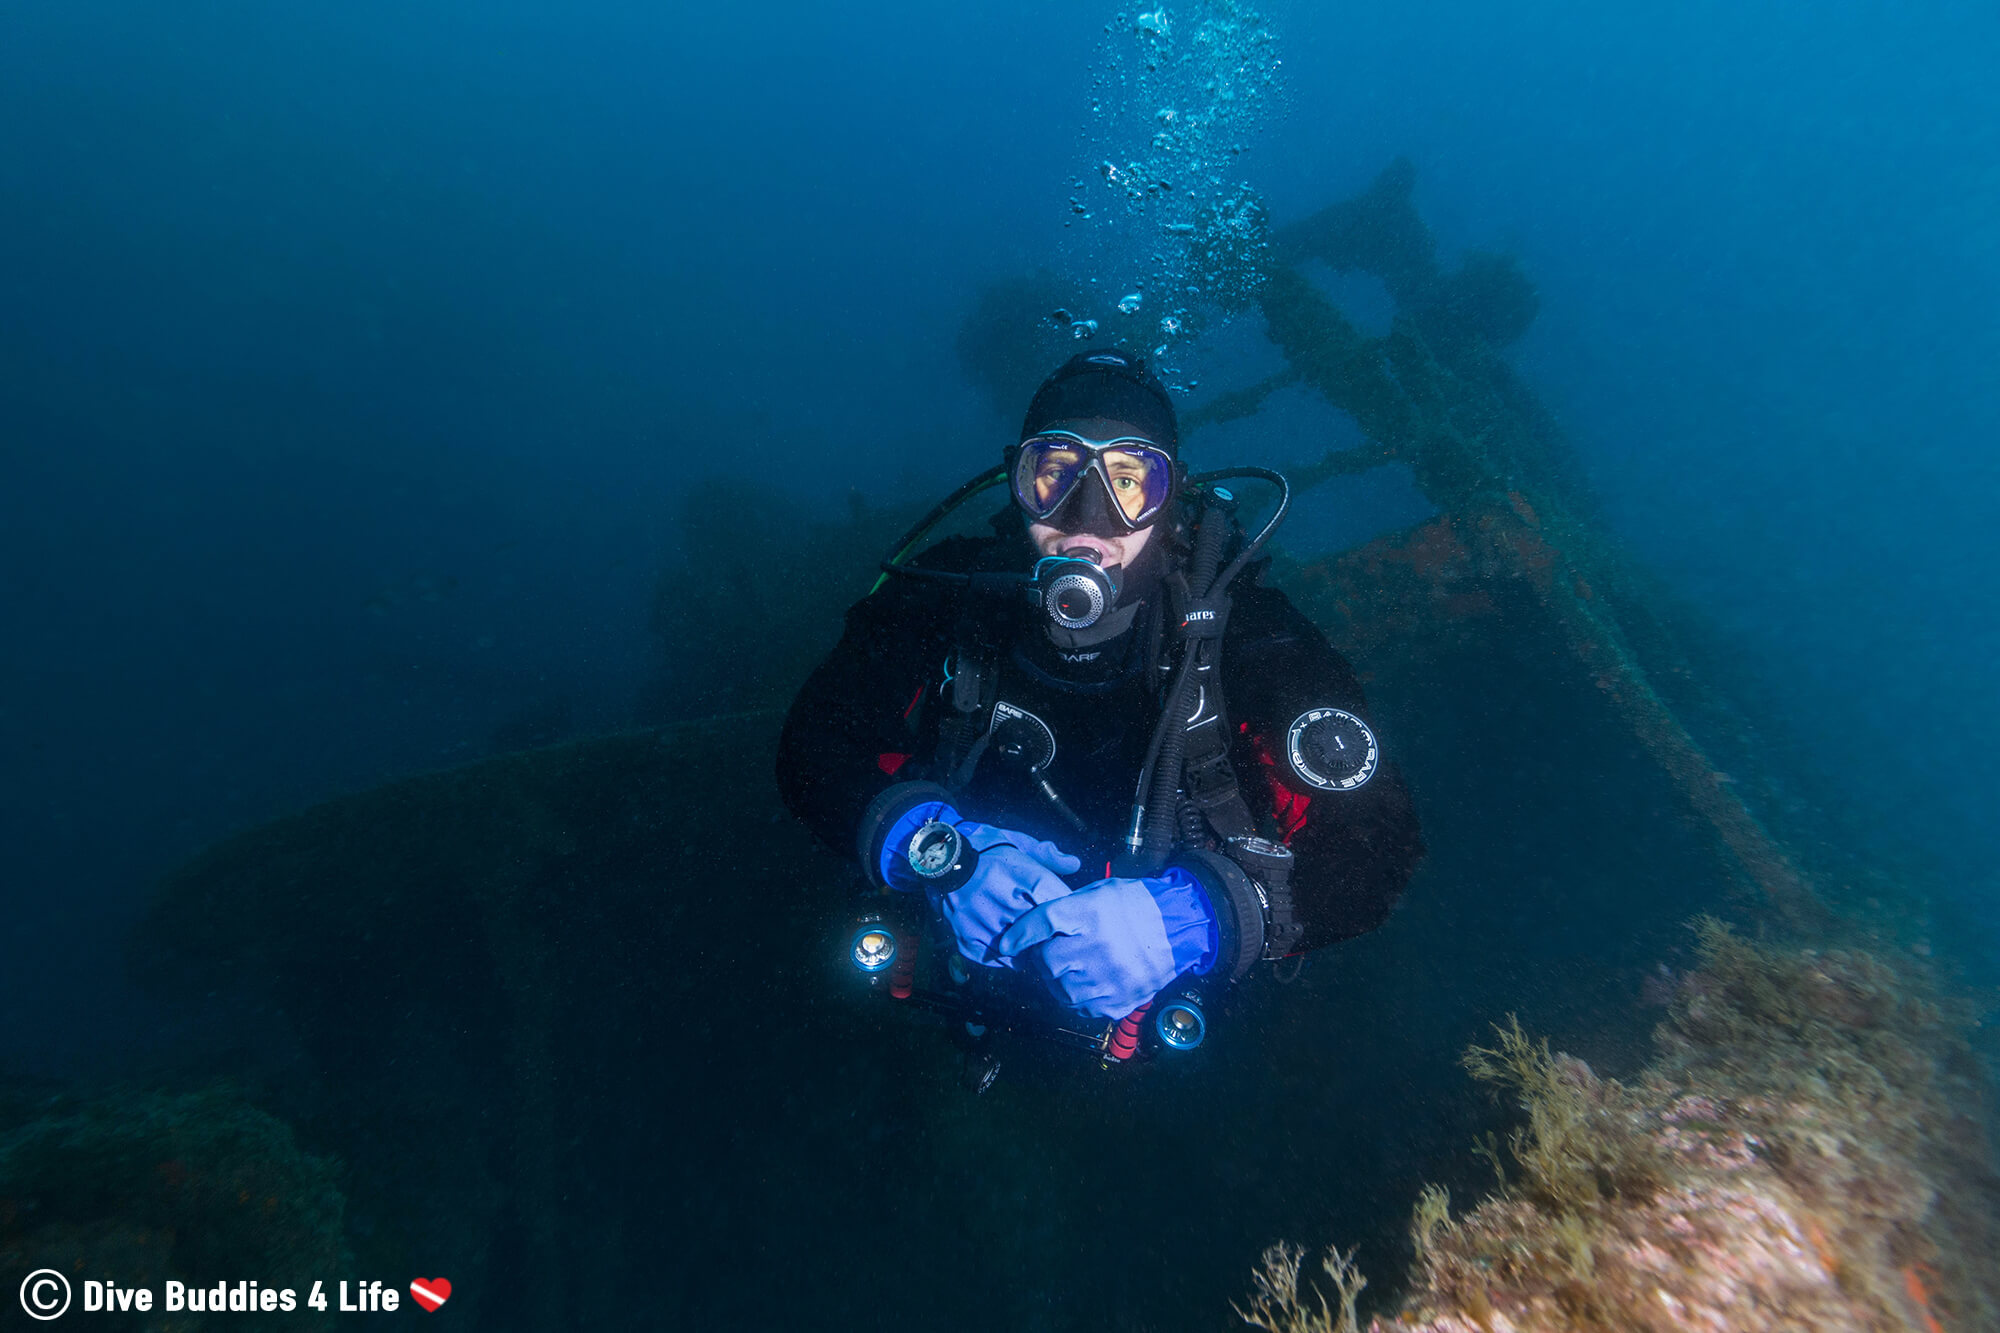 Joey Scuba Diving To The Boreas Tugboat In Spain's Costa Brava